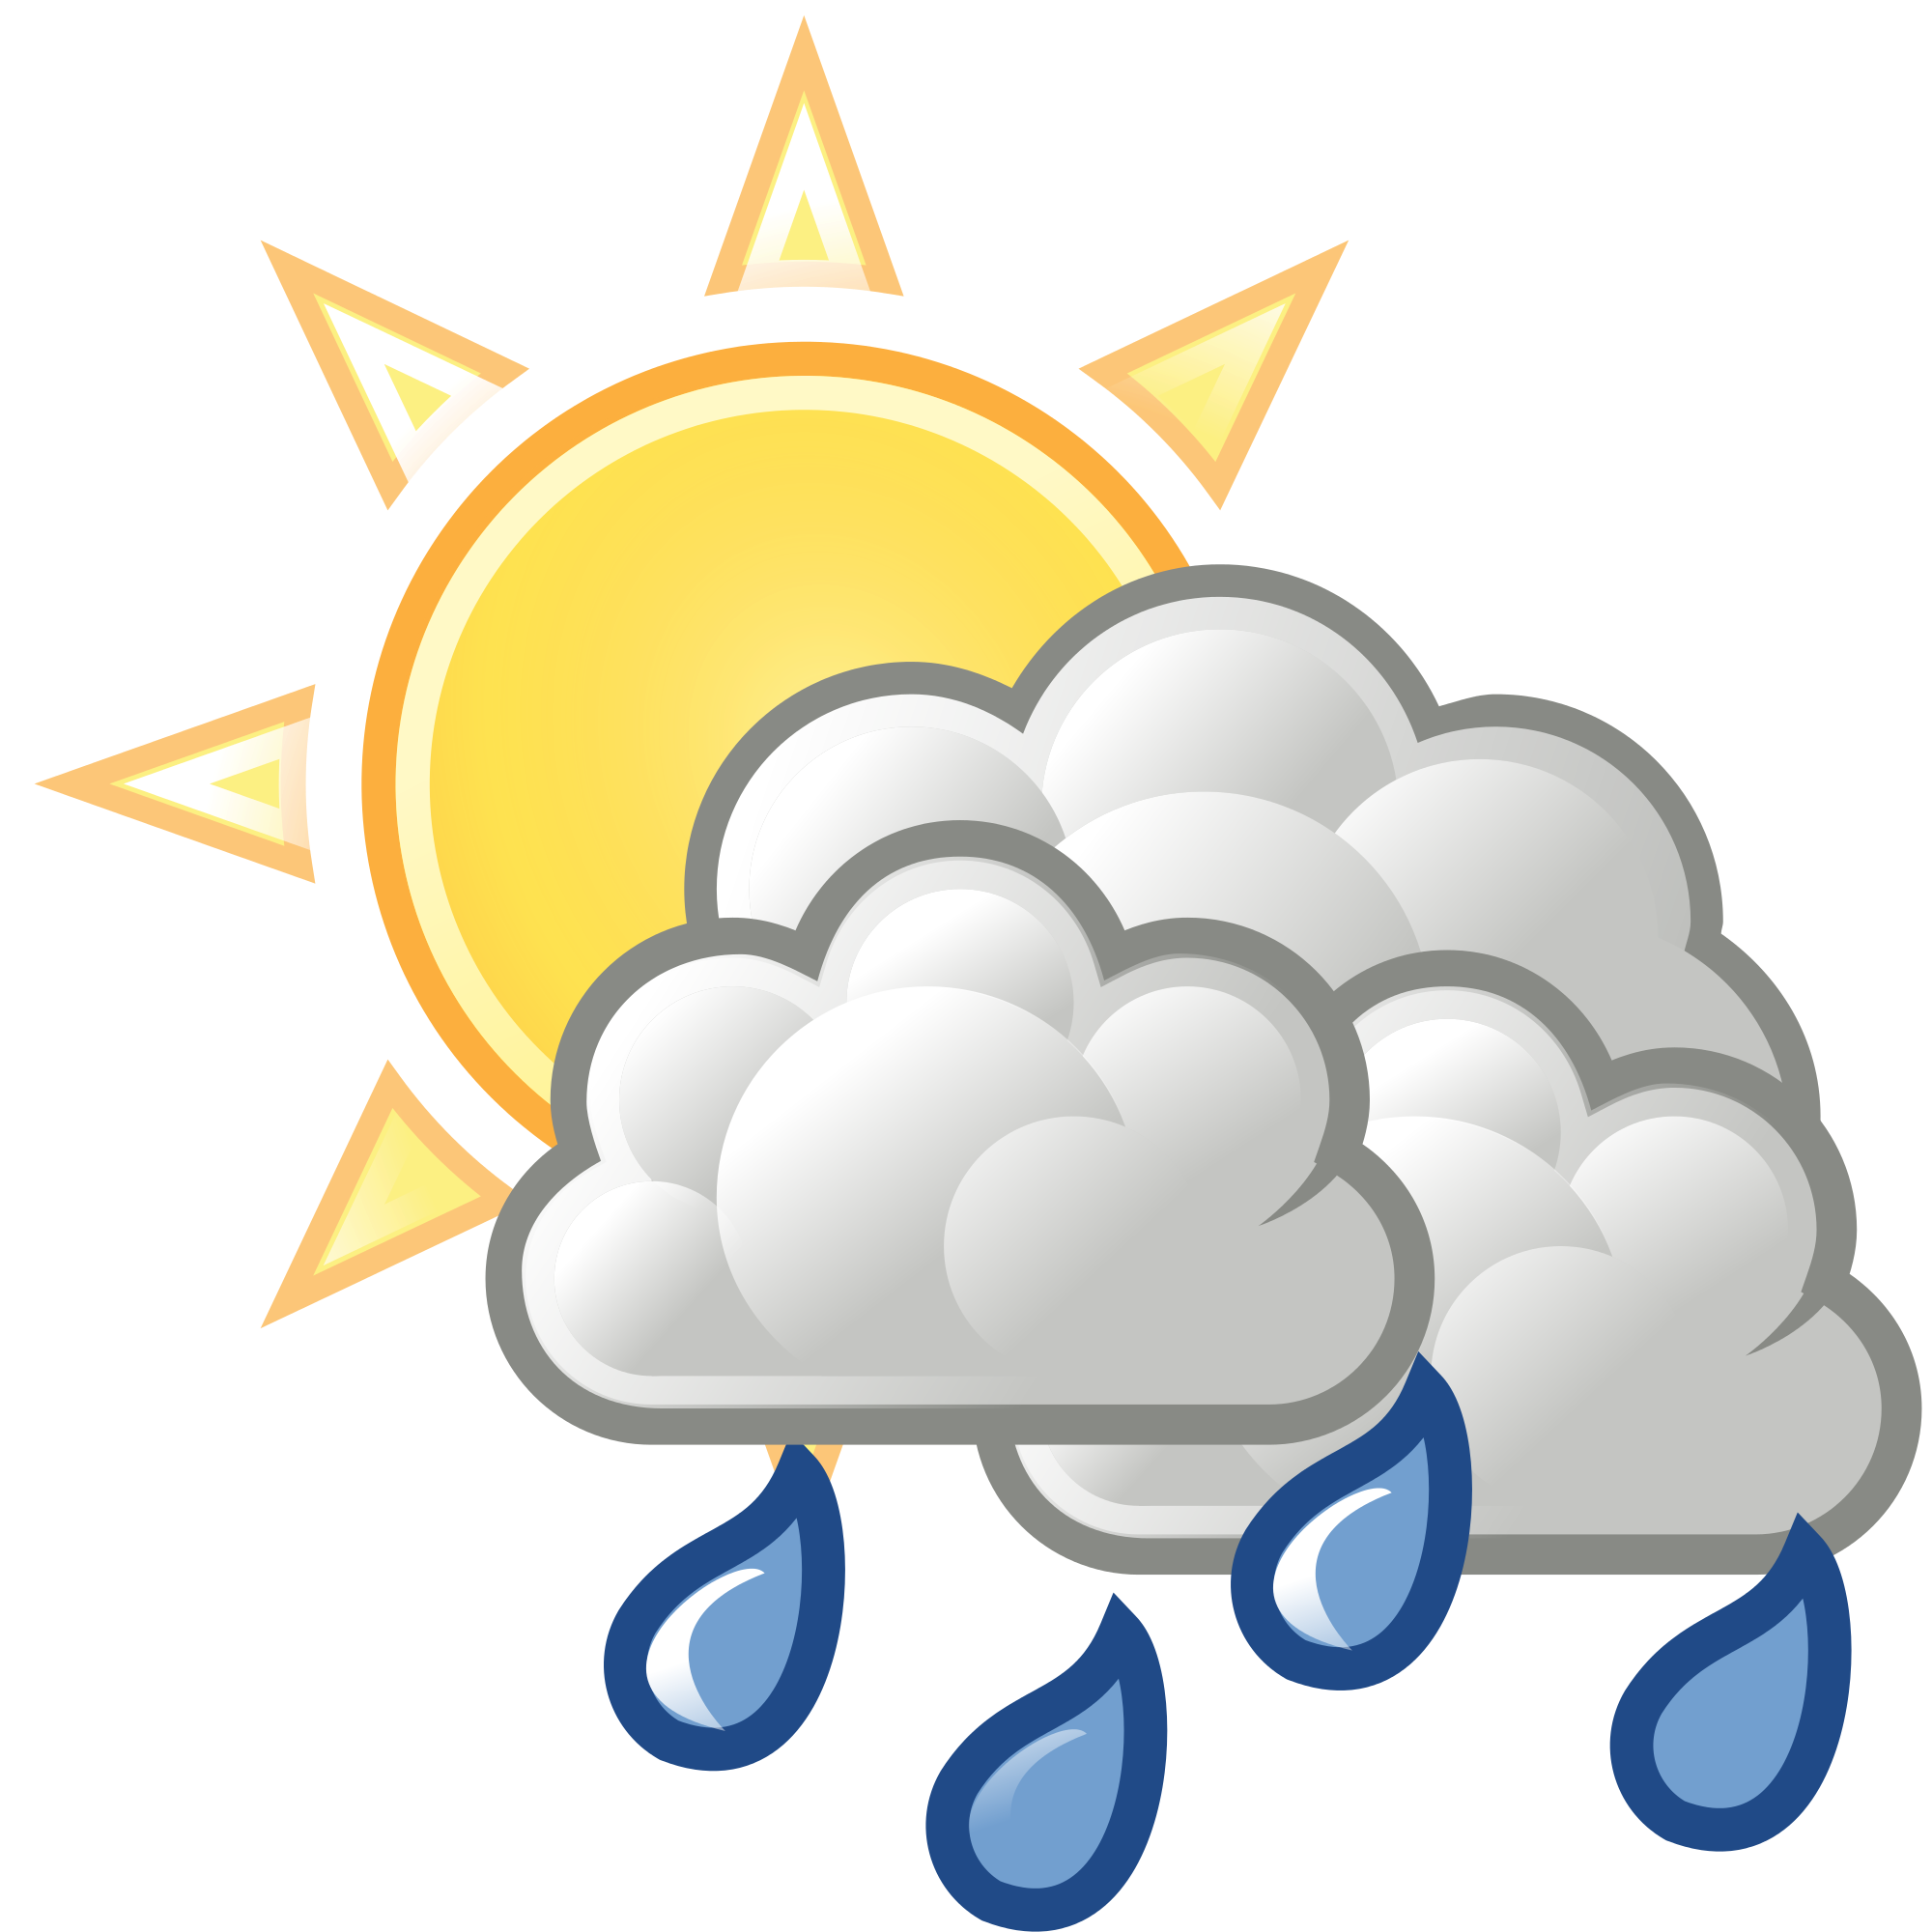 Rain sun clipart picture transparent stock File:Weather-sun-clouds-some-rain.svg - Wikimedia Commons picture transparent stock